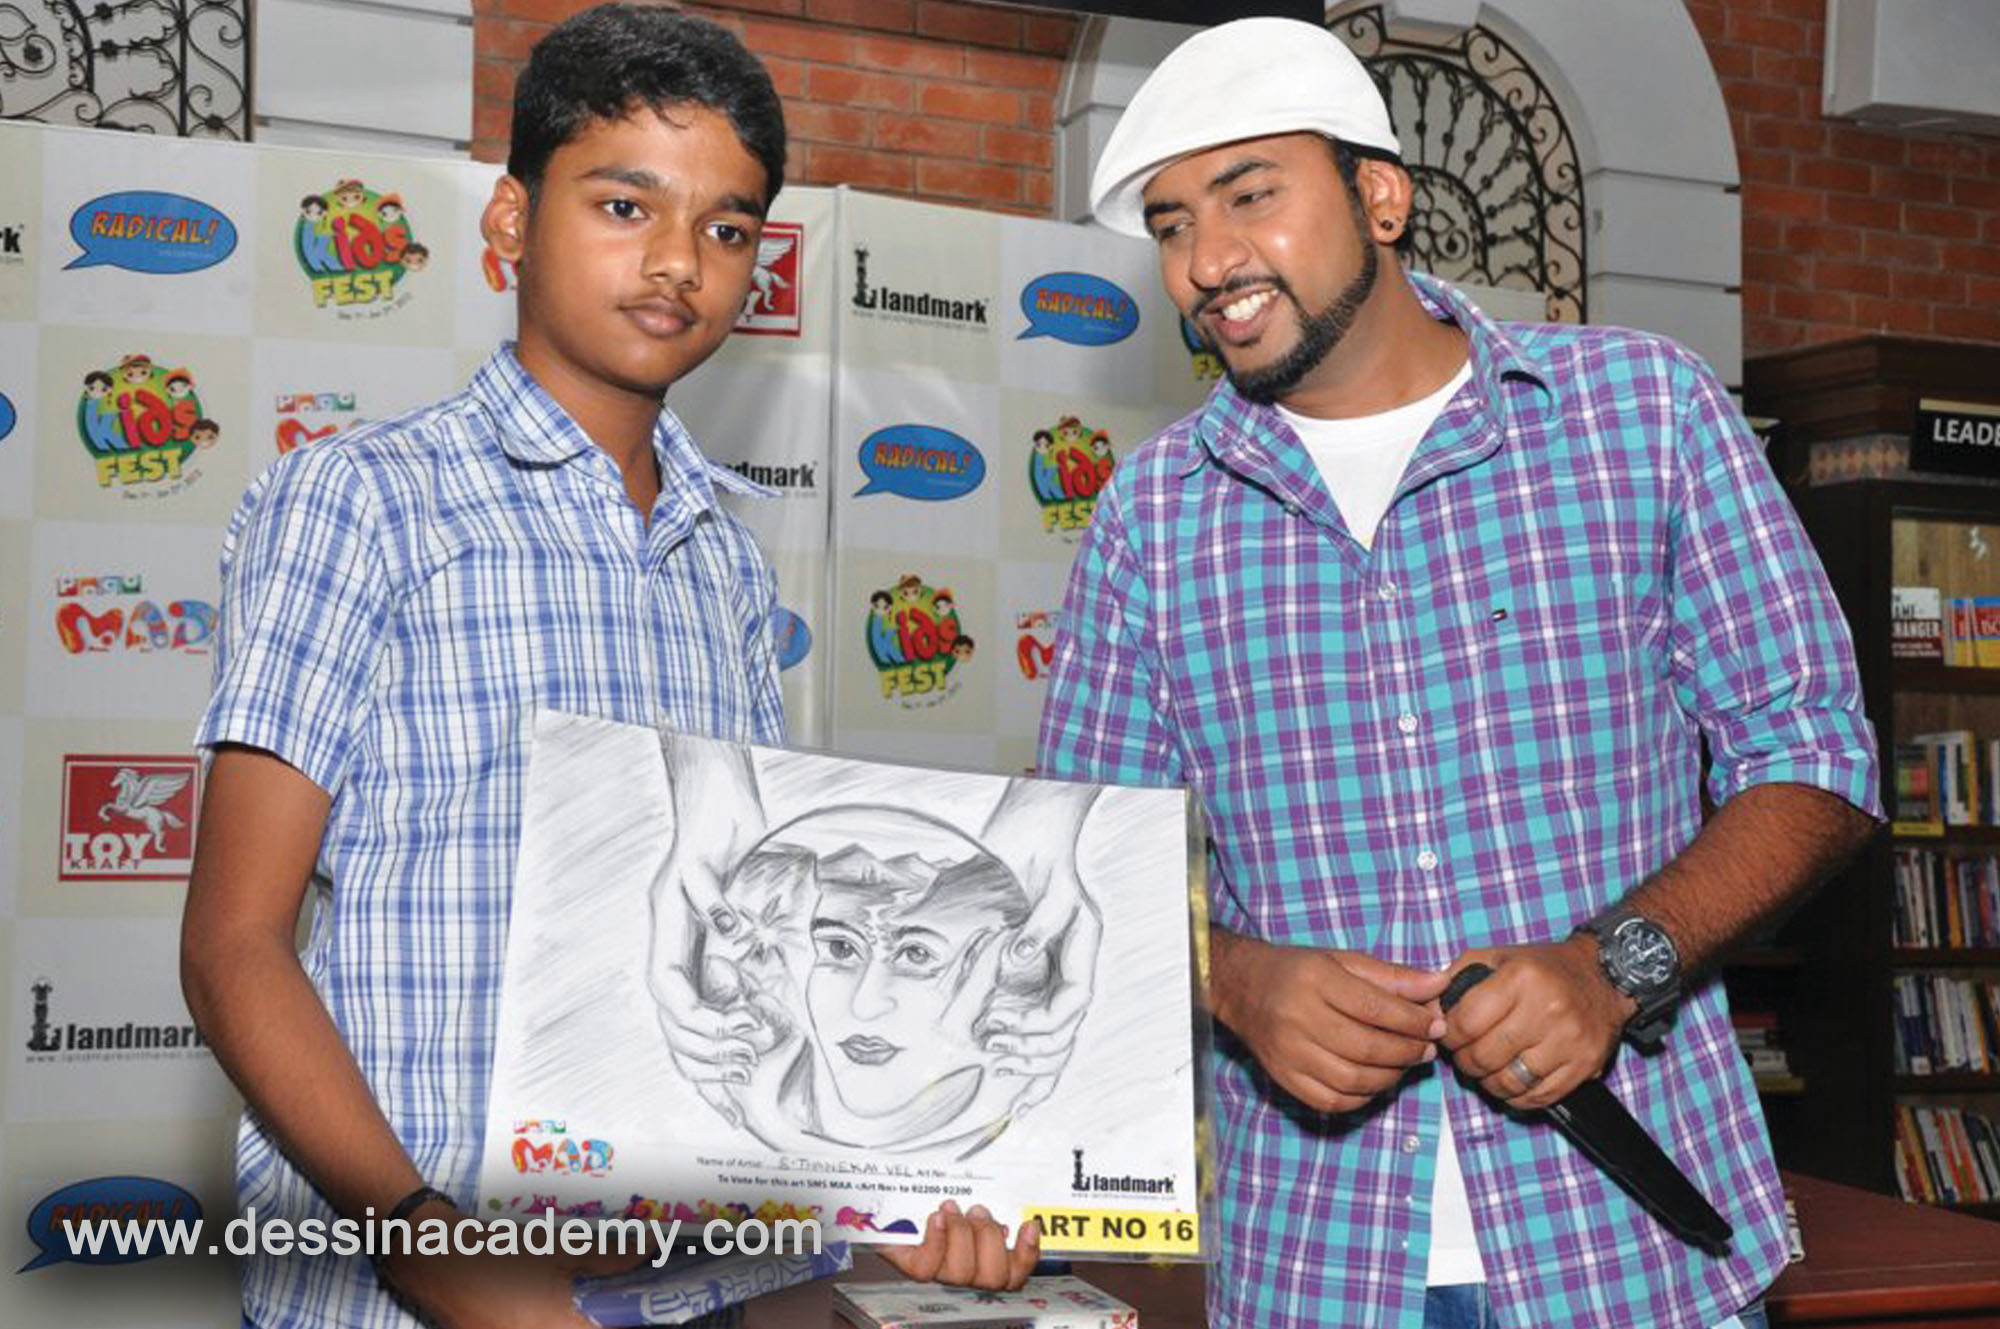 Dessin School of Arts Students Acheivement 5, Time kids Pre-School, oil painting classes for adults in Adyar